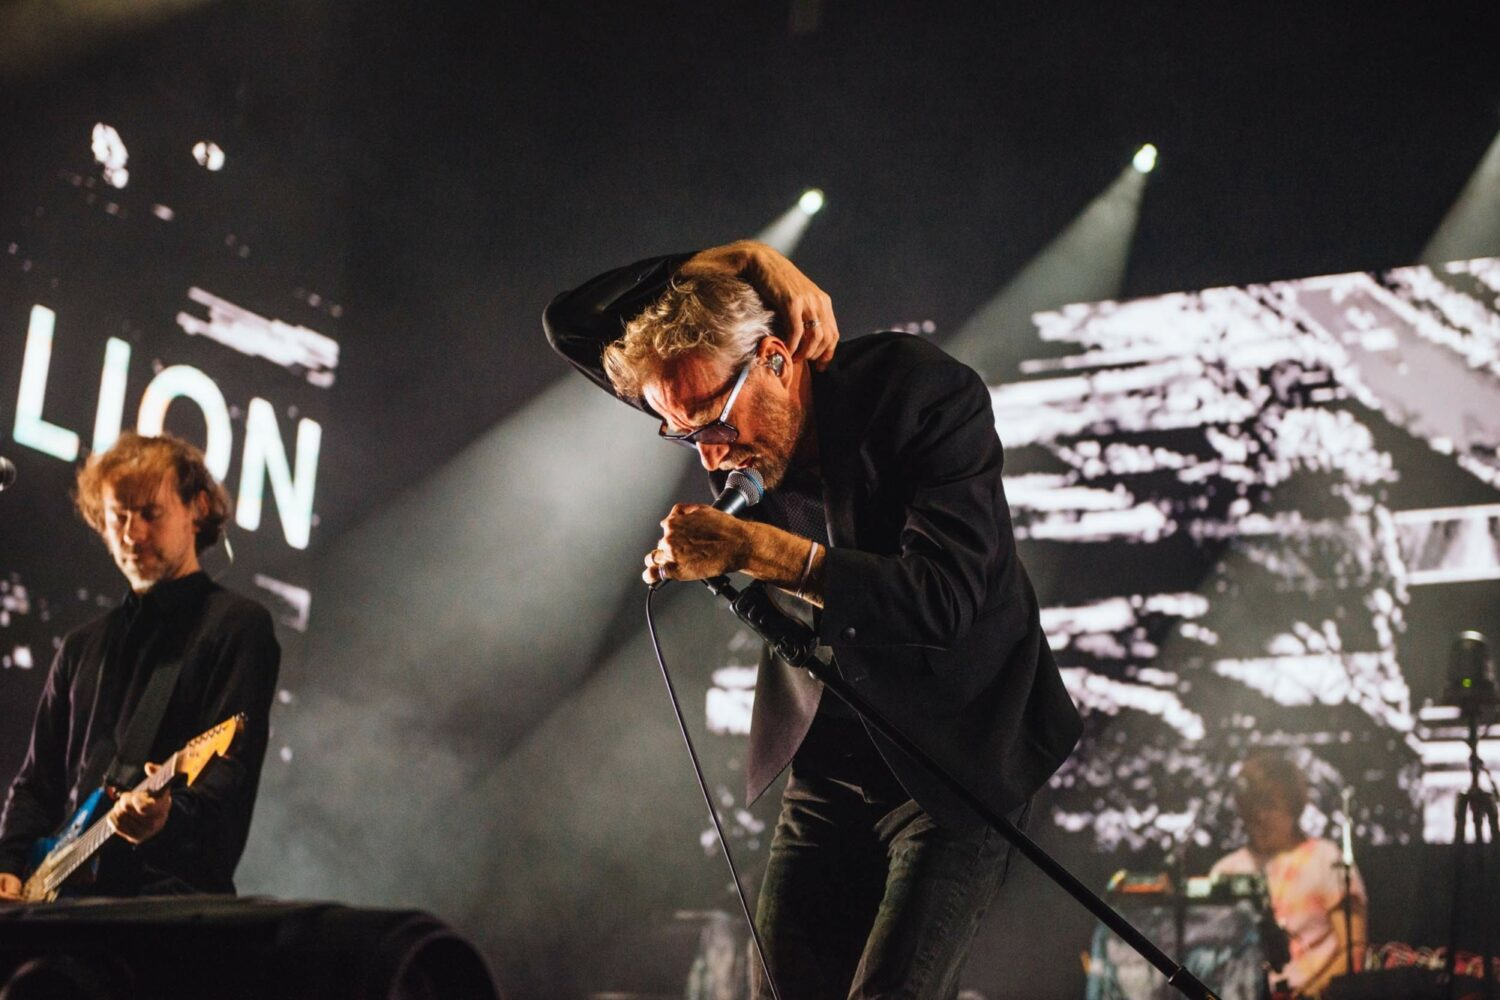 The National to play two special O2 Academy Brixton shows